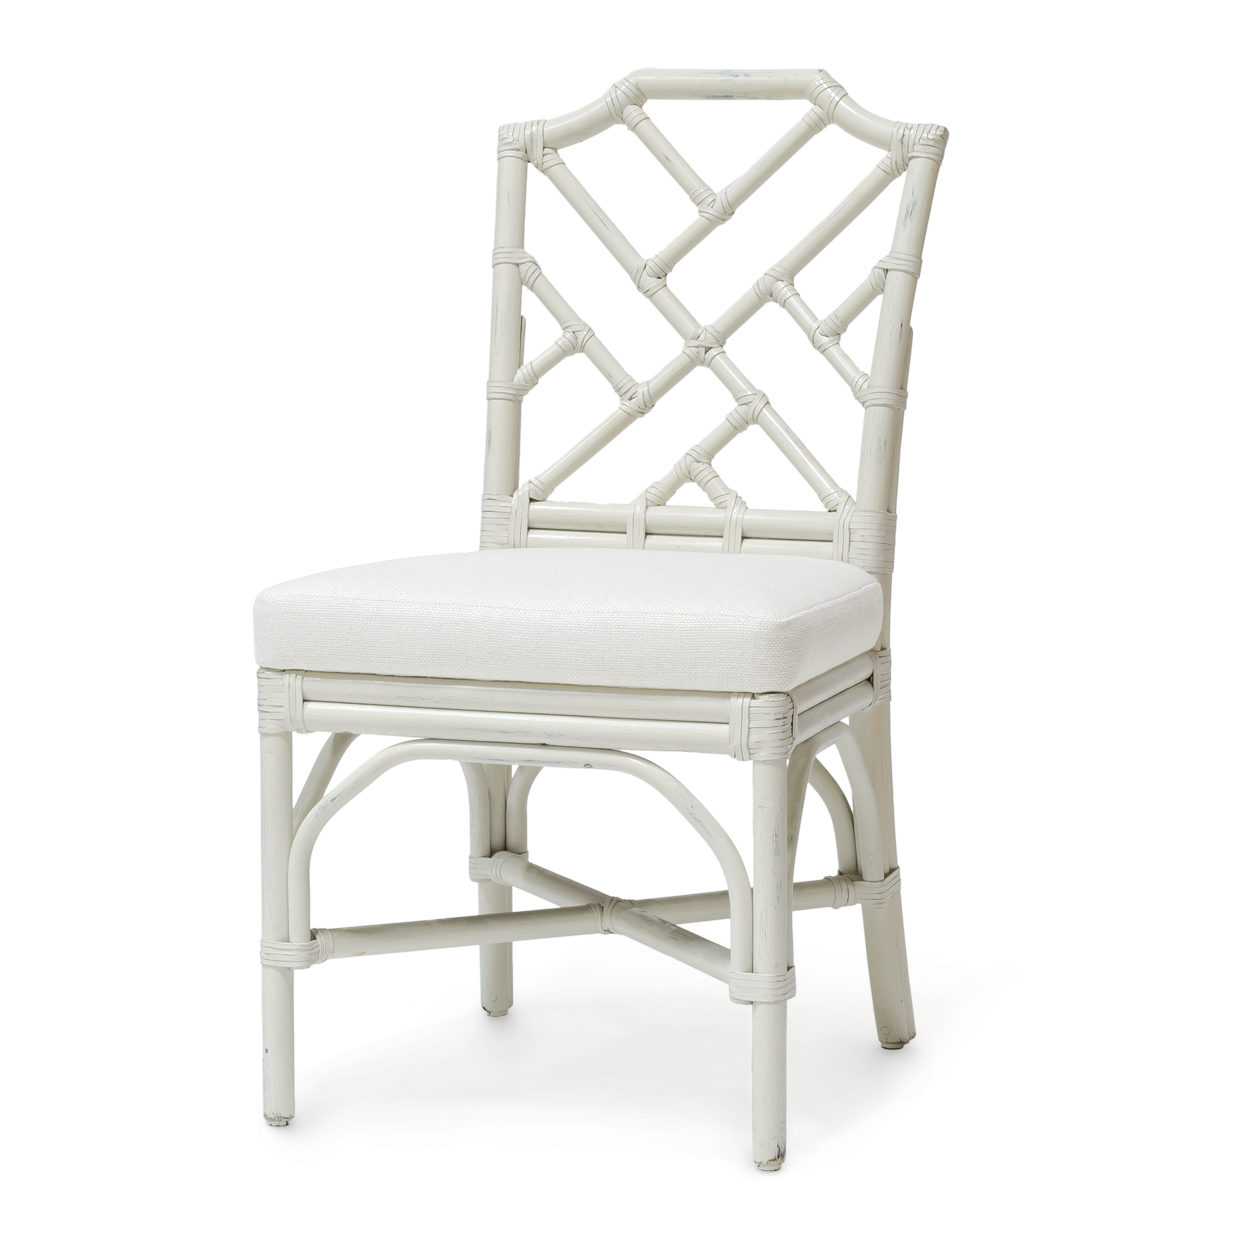 Description. PAVILION SIDE CHAIR